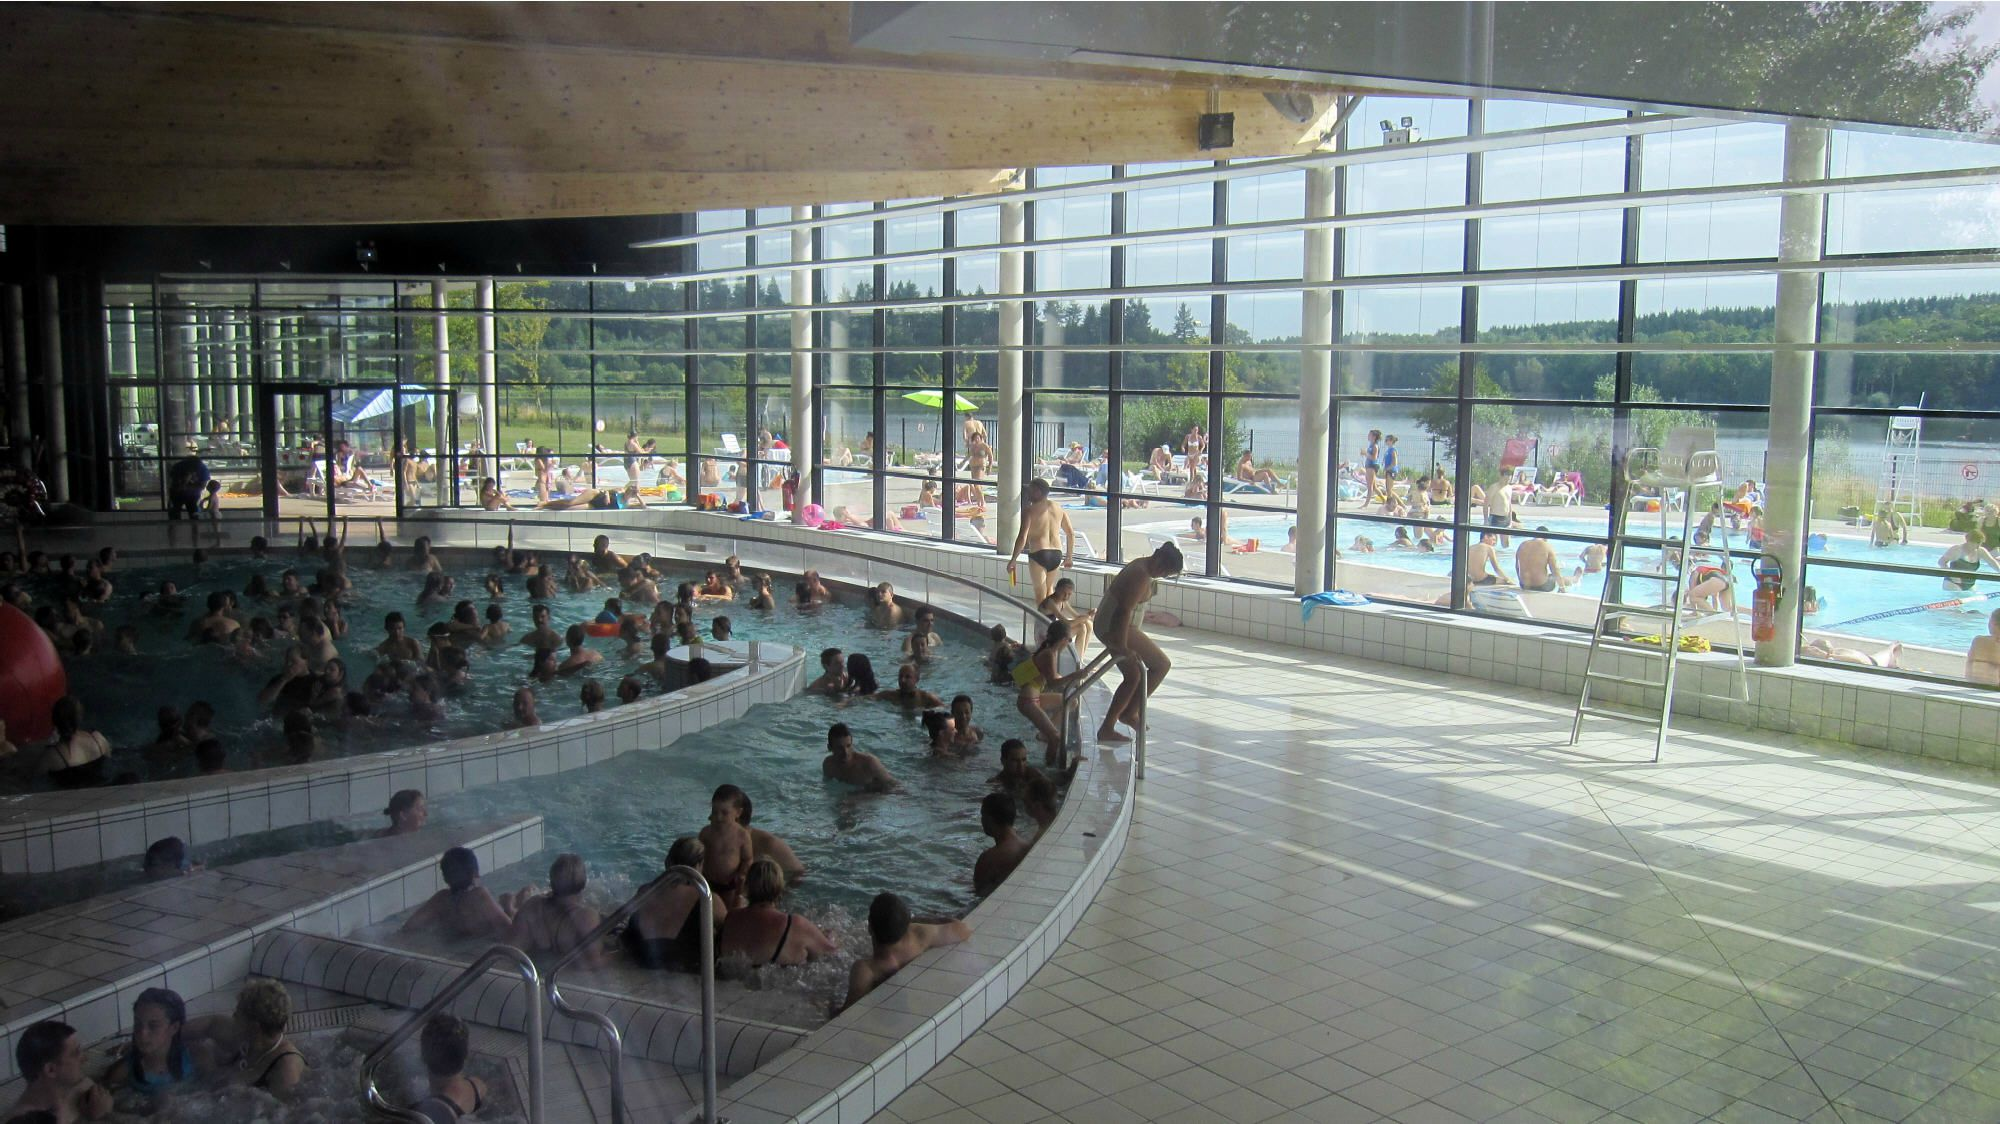 Valjoly un dimanche de canicule chrisnord trelon nord for Piscine fourmies